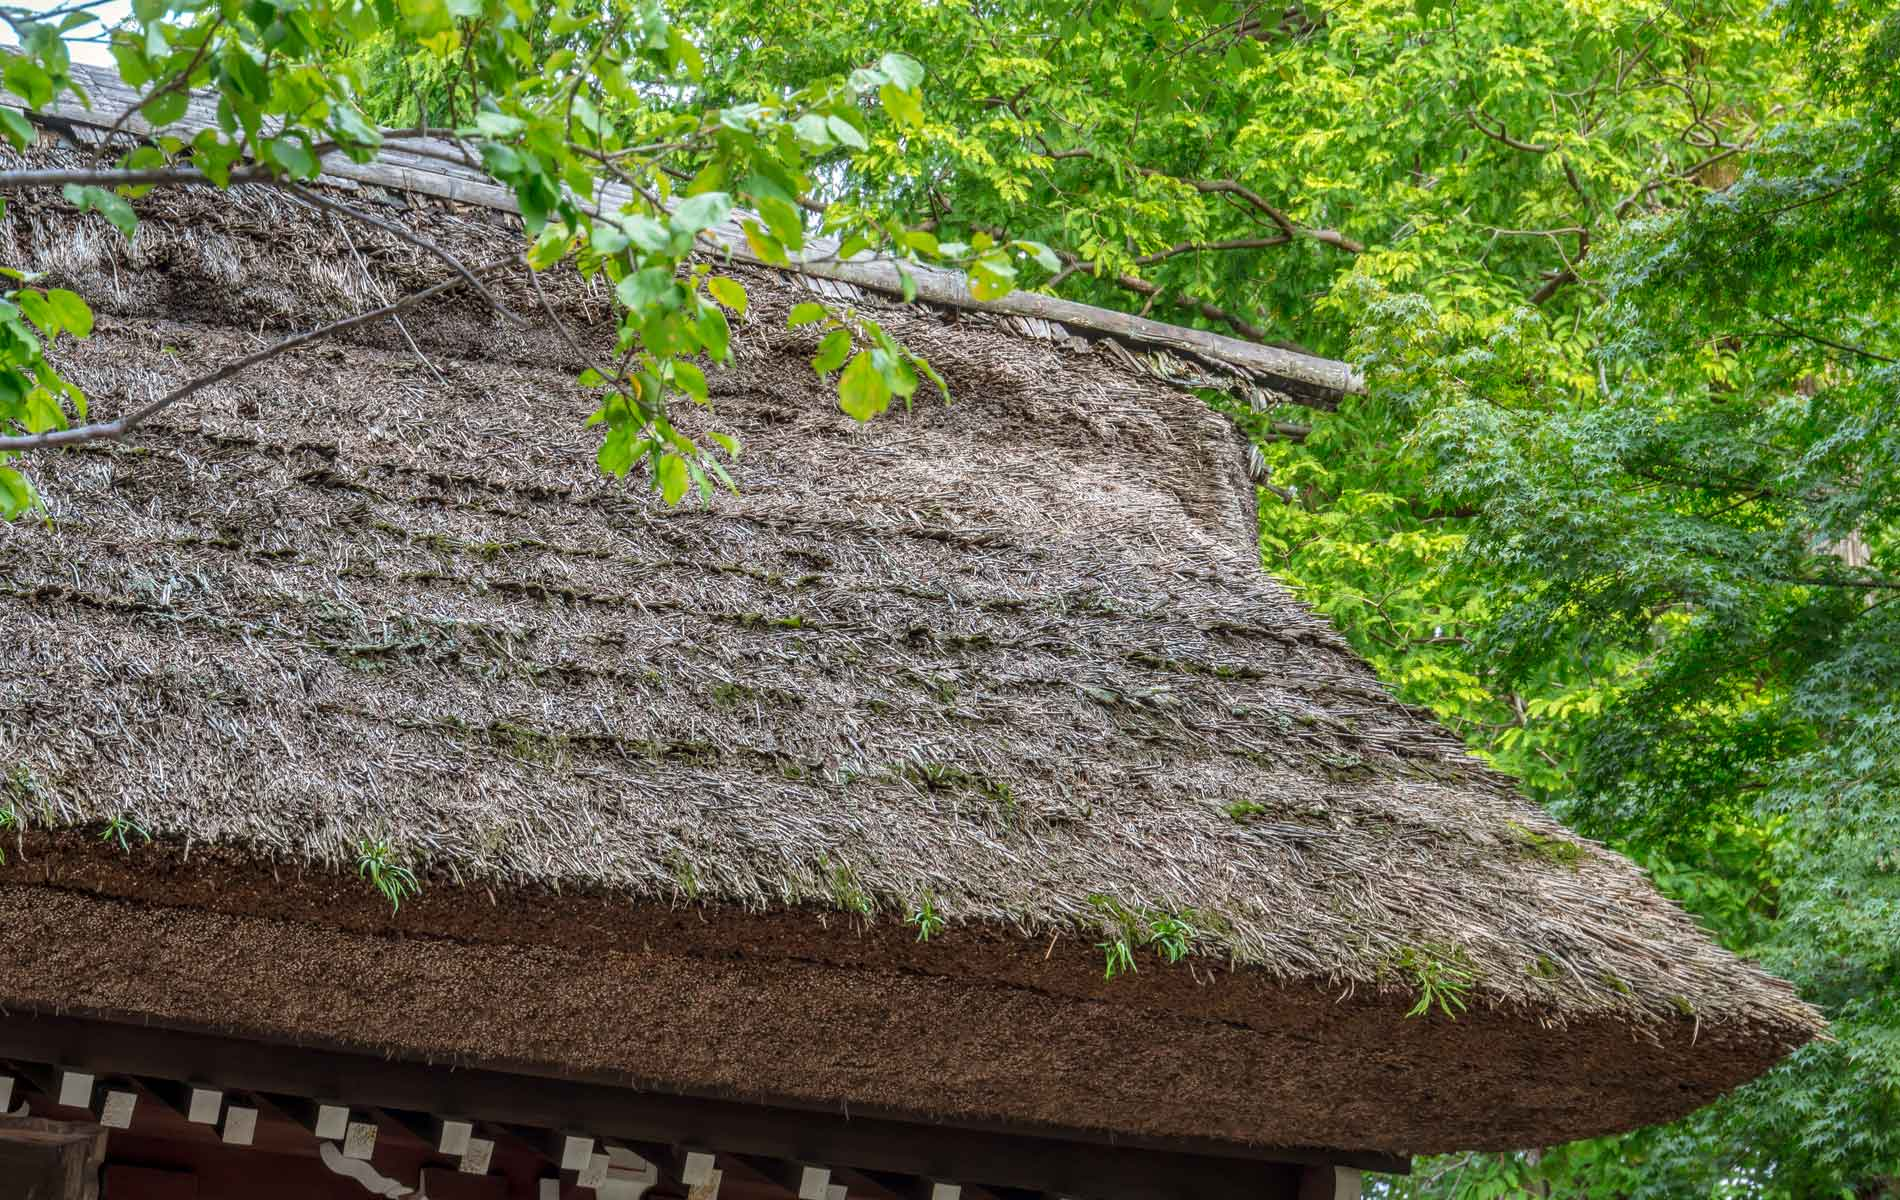 A thatched roof in one of Japan's folk villages